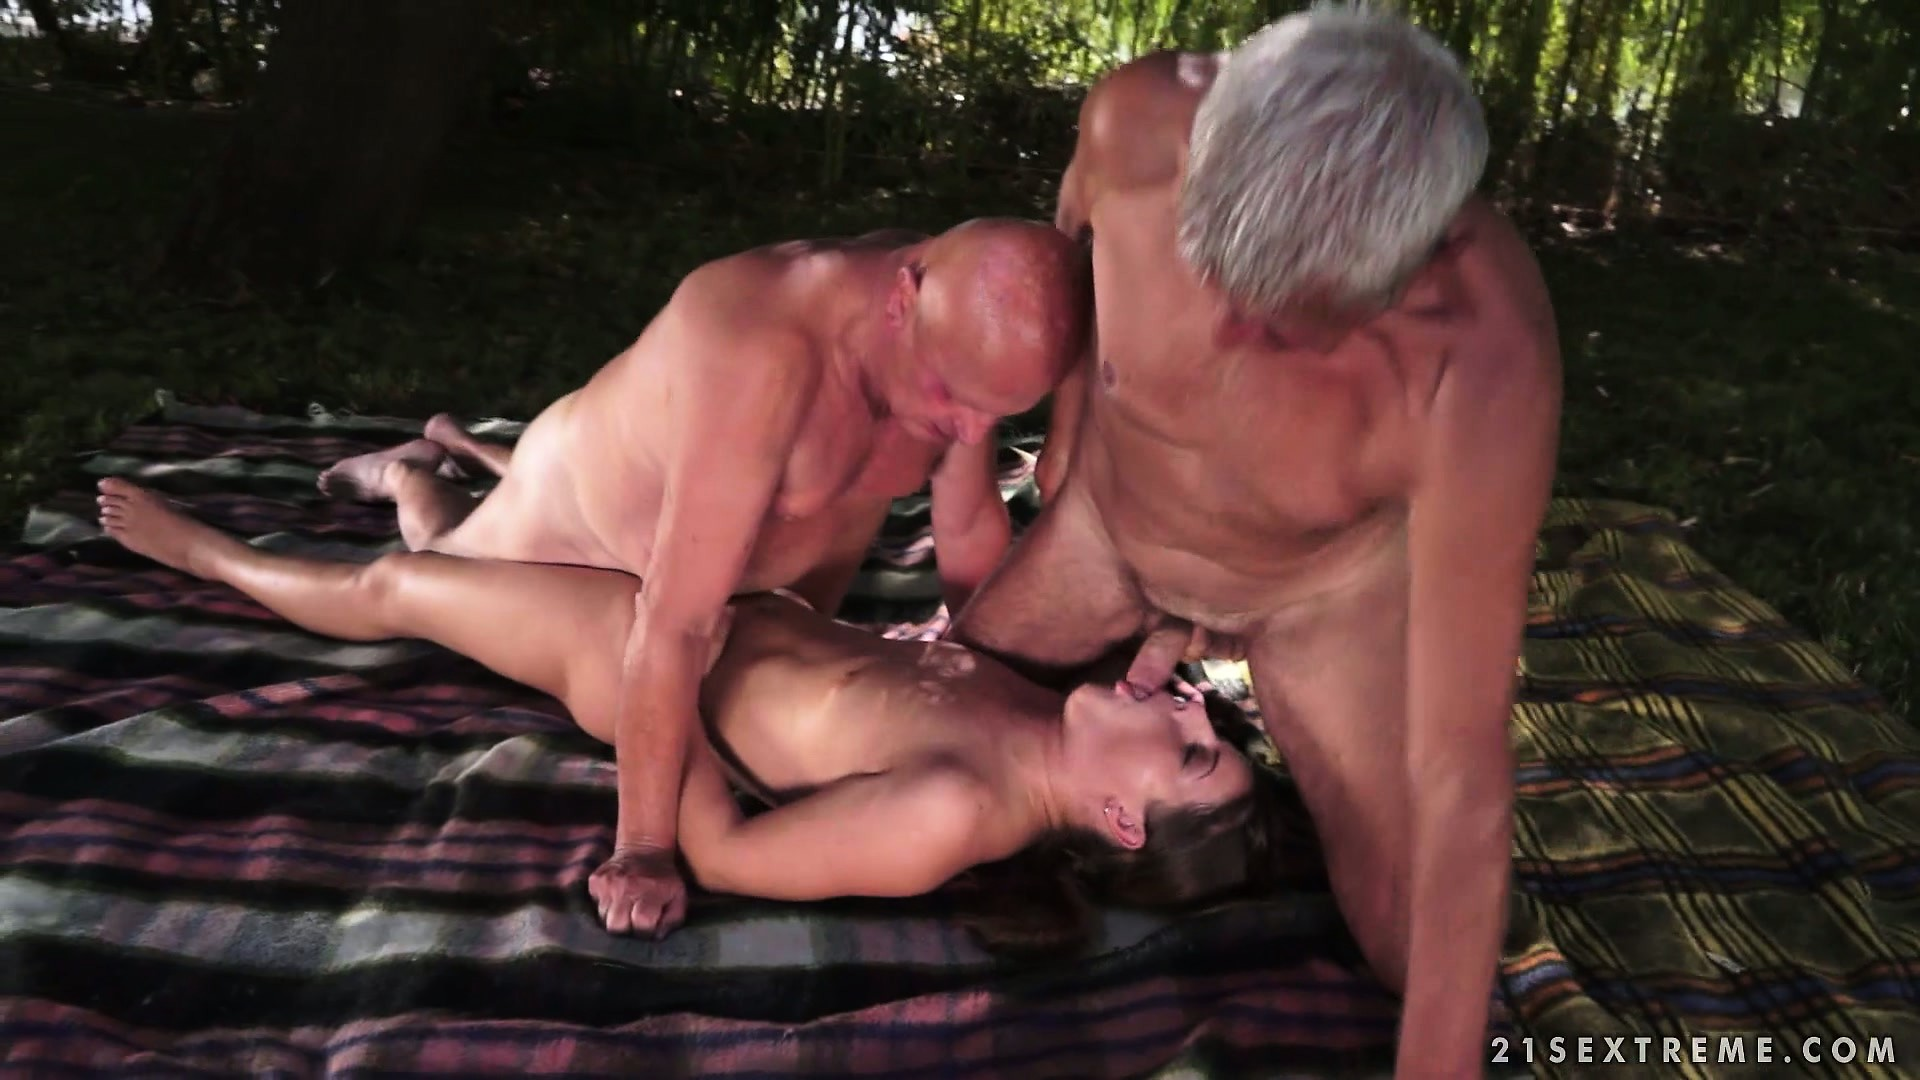 Porno Video of Two Dirty Old Men Find A Feisty Young Brunette In The Woods And Bang Her